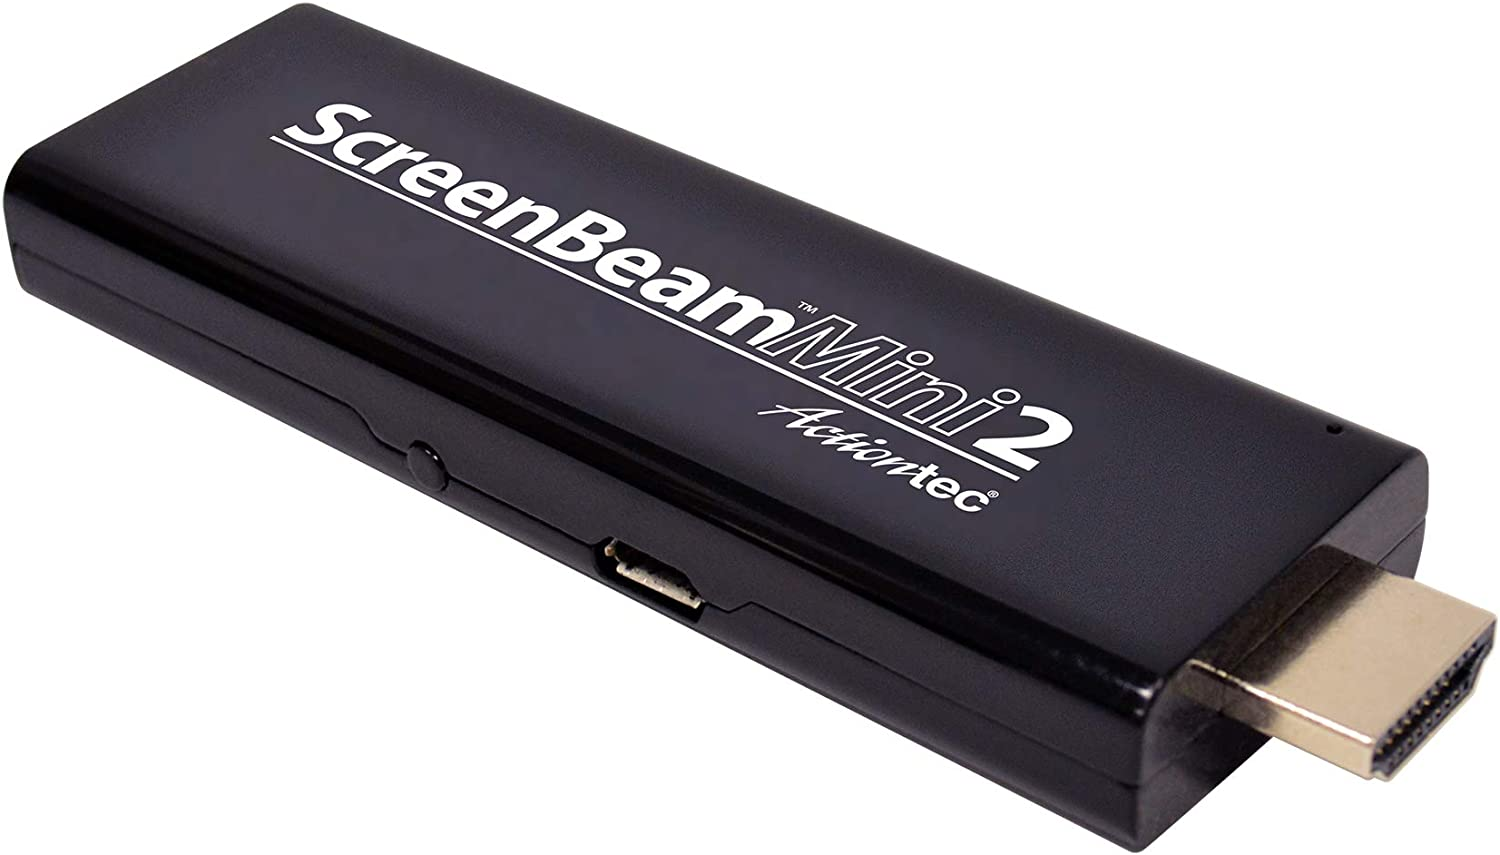 Actiontec ScreenBeam Mini2 Wireless Display Adapter/Receiver with Miracast (SBWD60A01) - Mirror Phone/Tablet/Laptop to HDTV, HDMI Connector, No Apps Required, Supports Select Android & Windows Devices: Electronics